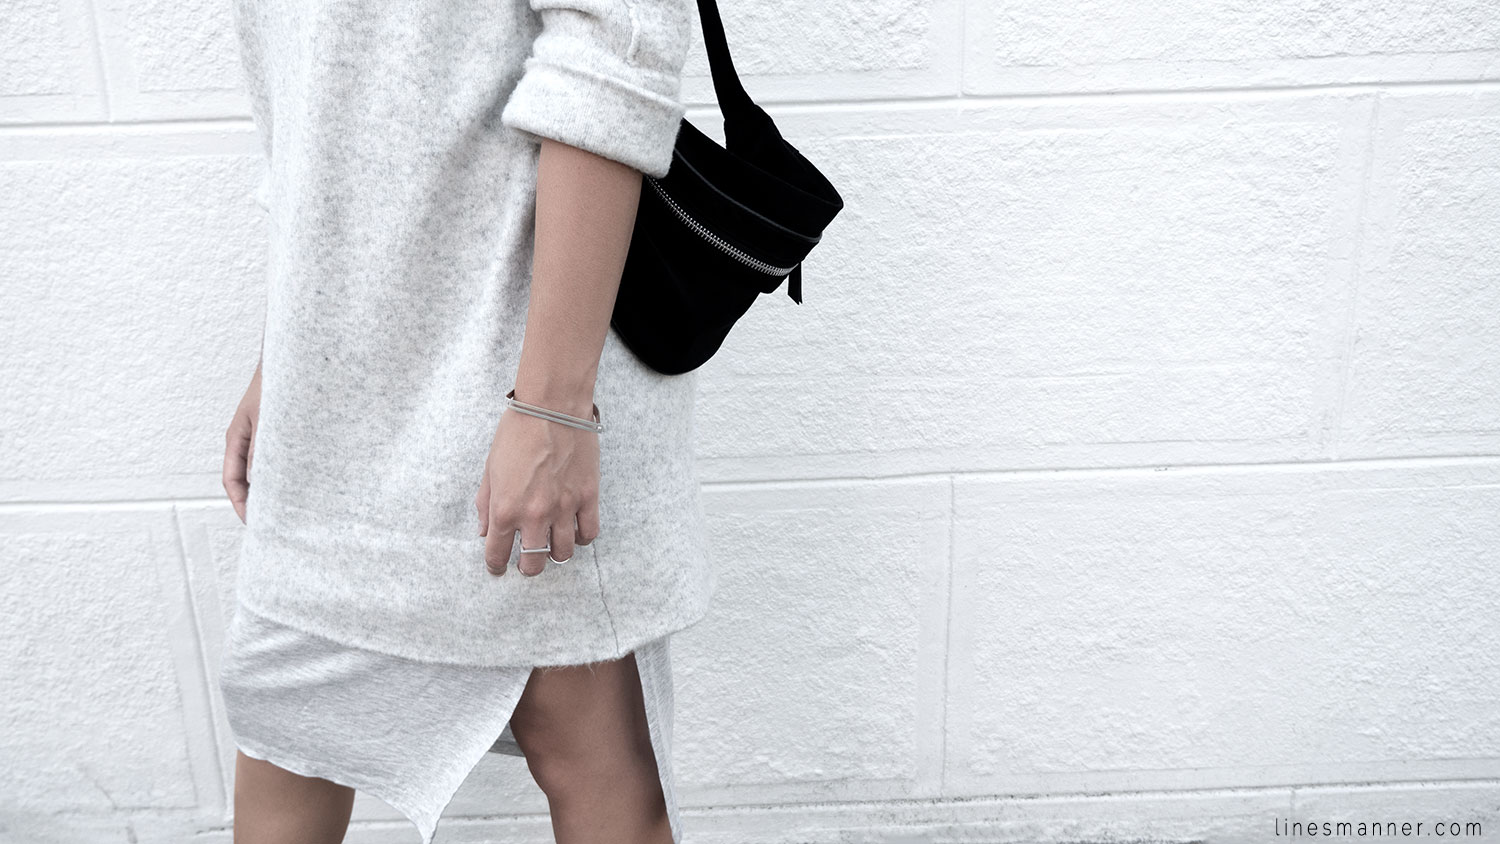 Lines-Manner-Fashion-Collaboration-The_Demeler-Monochrome-Grey_on_Grey-Fresh-Brightly-Outfit-Simplicity-Details-Trend-Minimalist-Flowy-Layering-Sleeves-Sweater_Dress-9